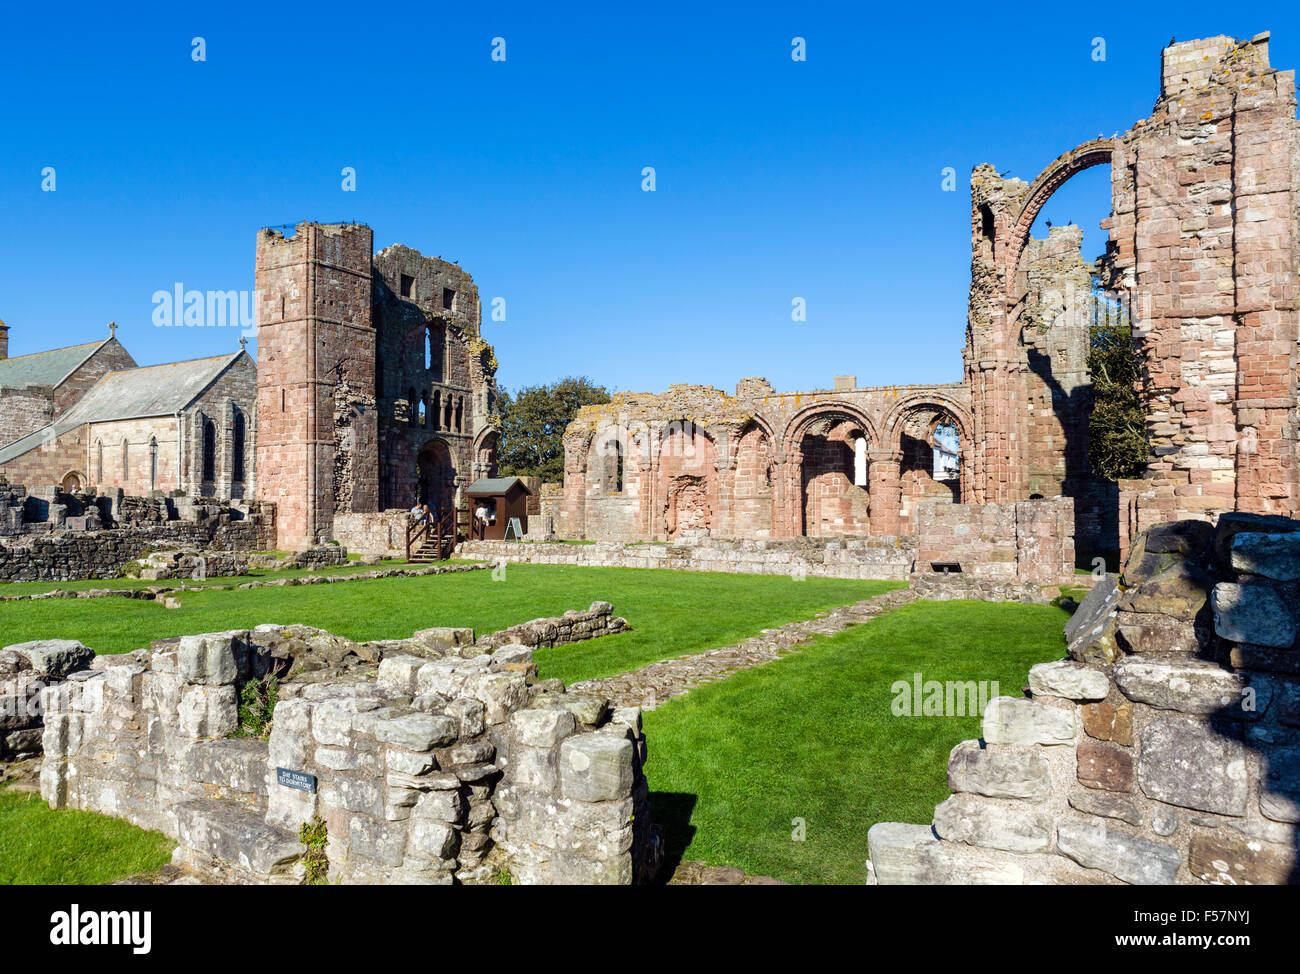 The ruins of the medieval Lindisfarne Priory, Holy Island, Northumberland, England, UK - Stock Image